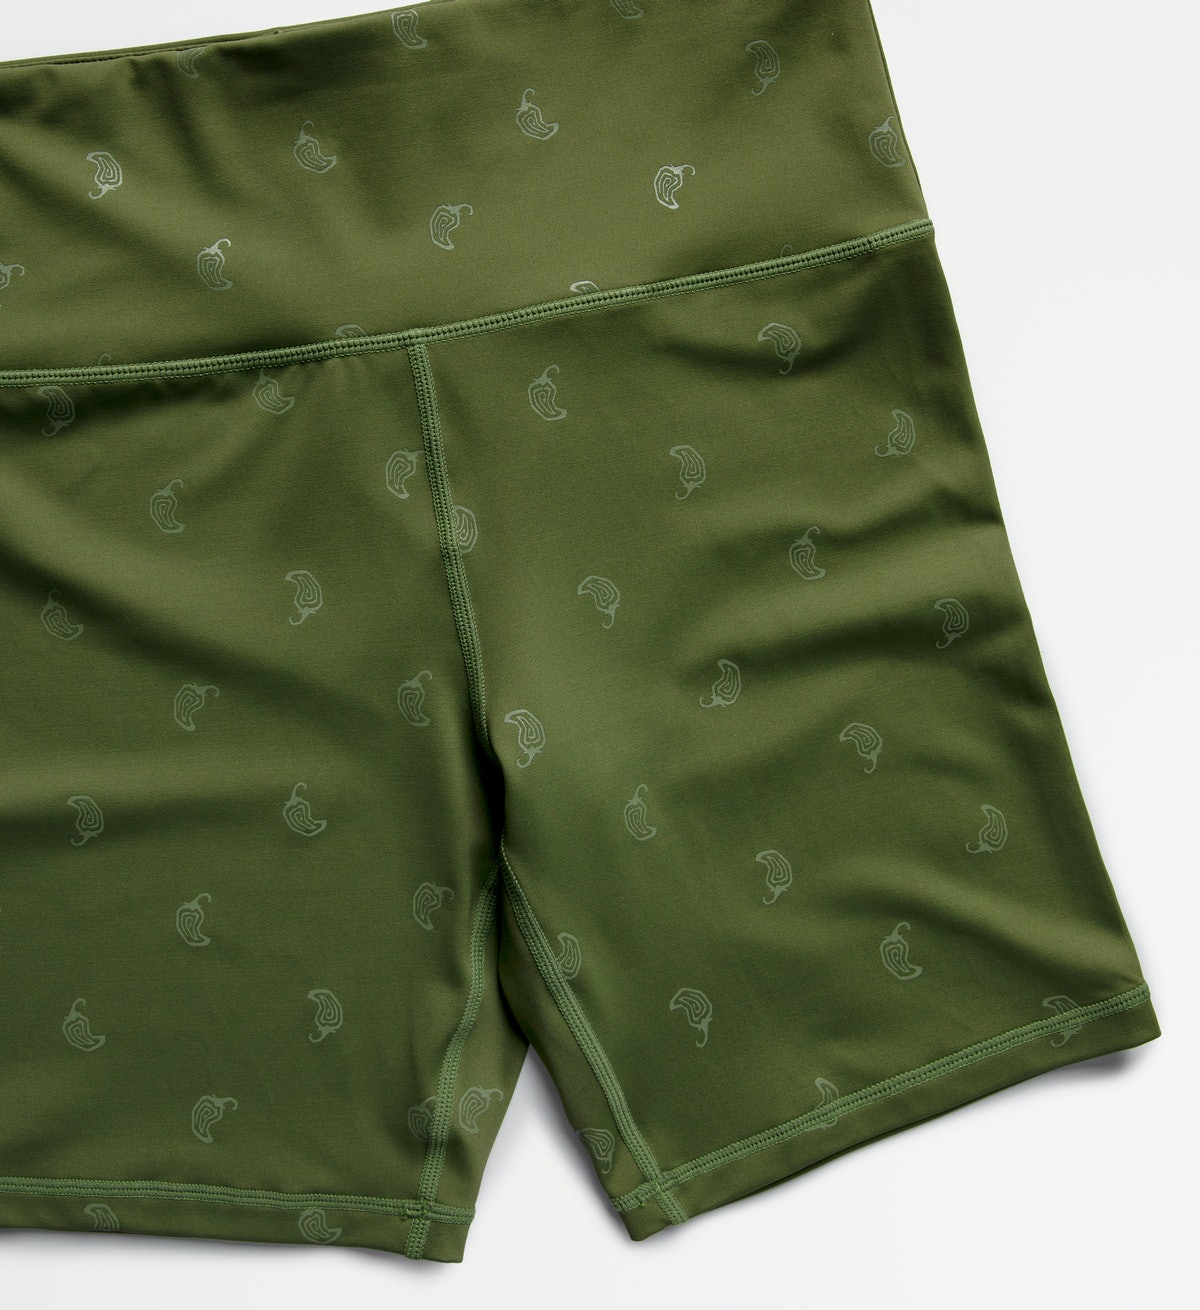 Chipotle's activewear line with bike shorts and leggings includes green and black shades.